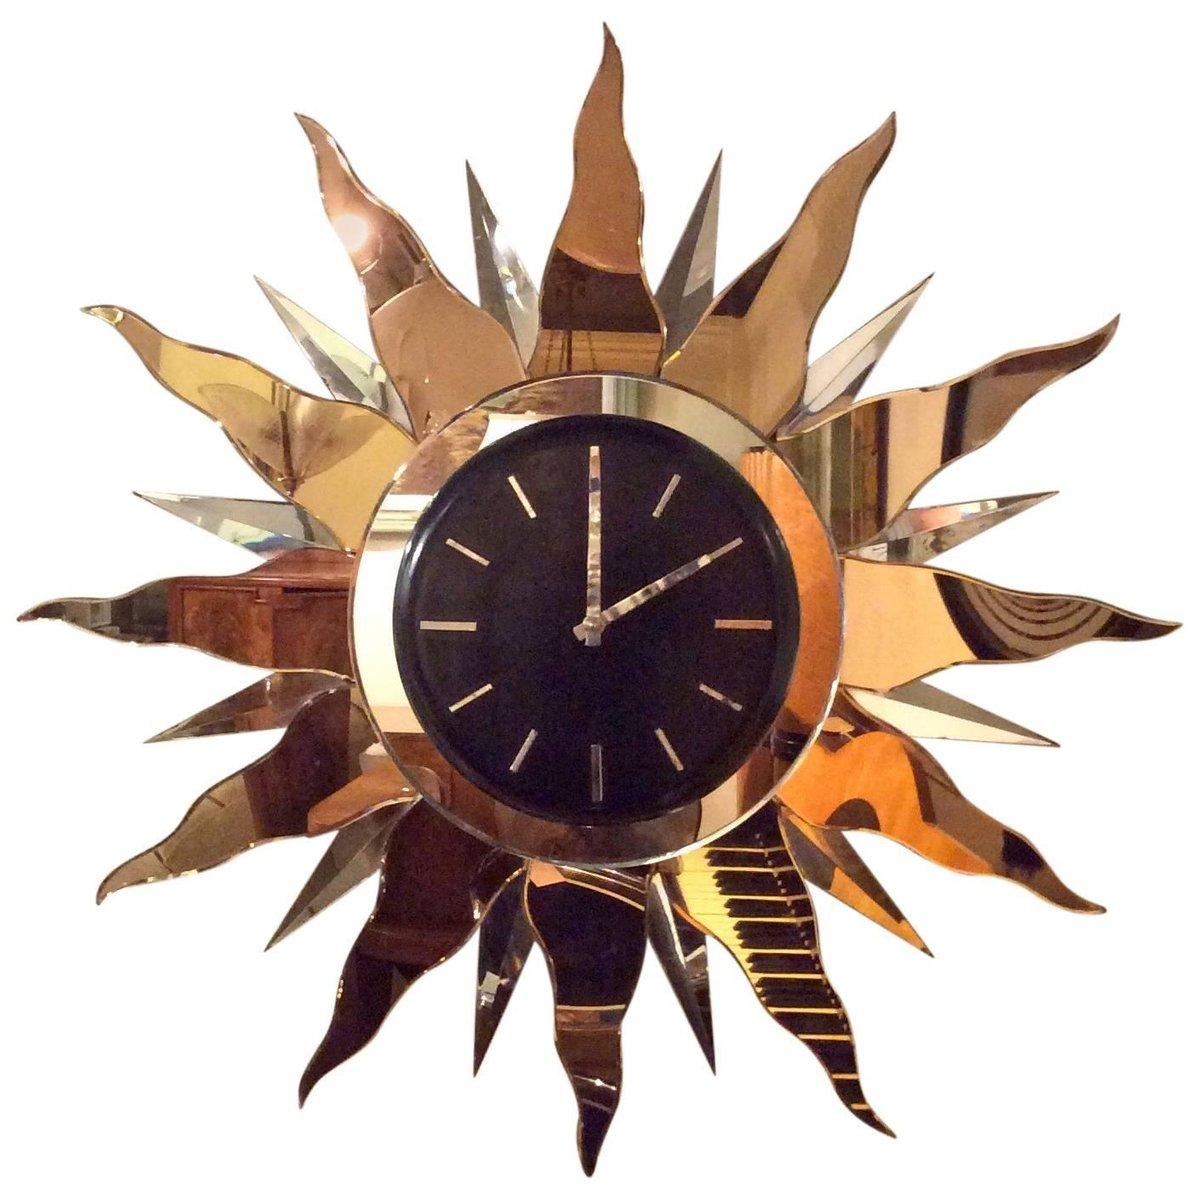 Large art deco wall clock 1930s for sale at pamono for Miroir art deco 1930